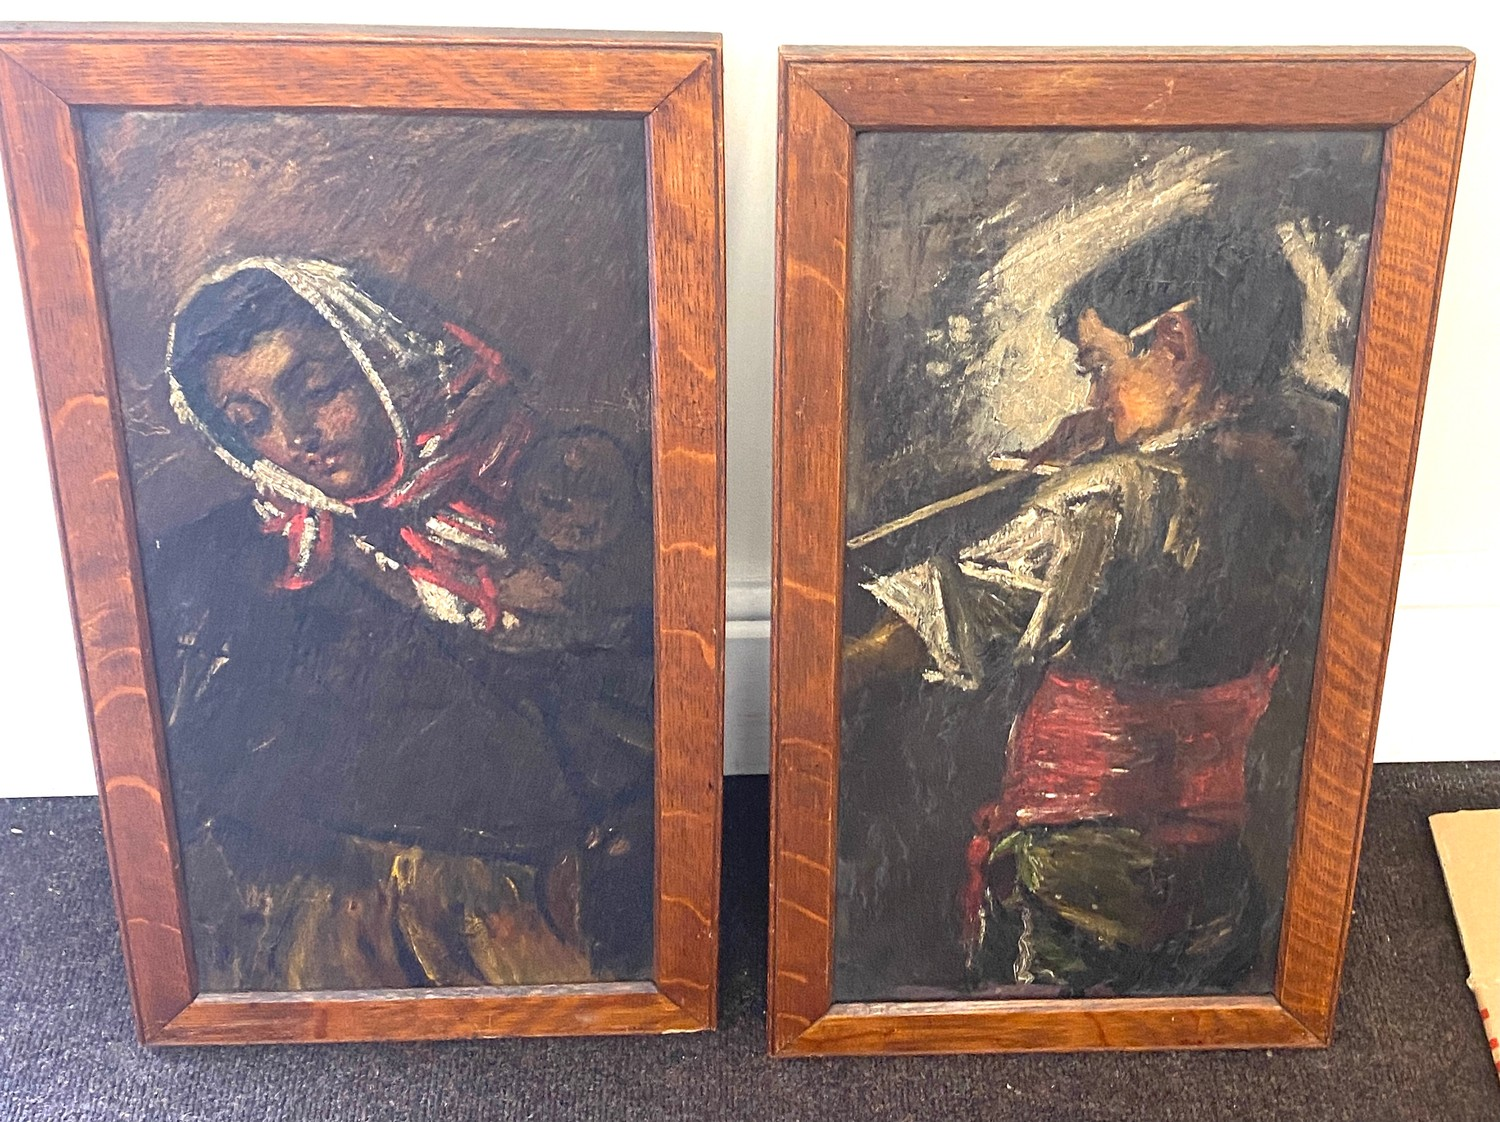 Pair of antique paintings on slate, signed on the frame.